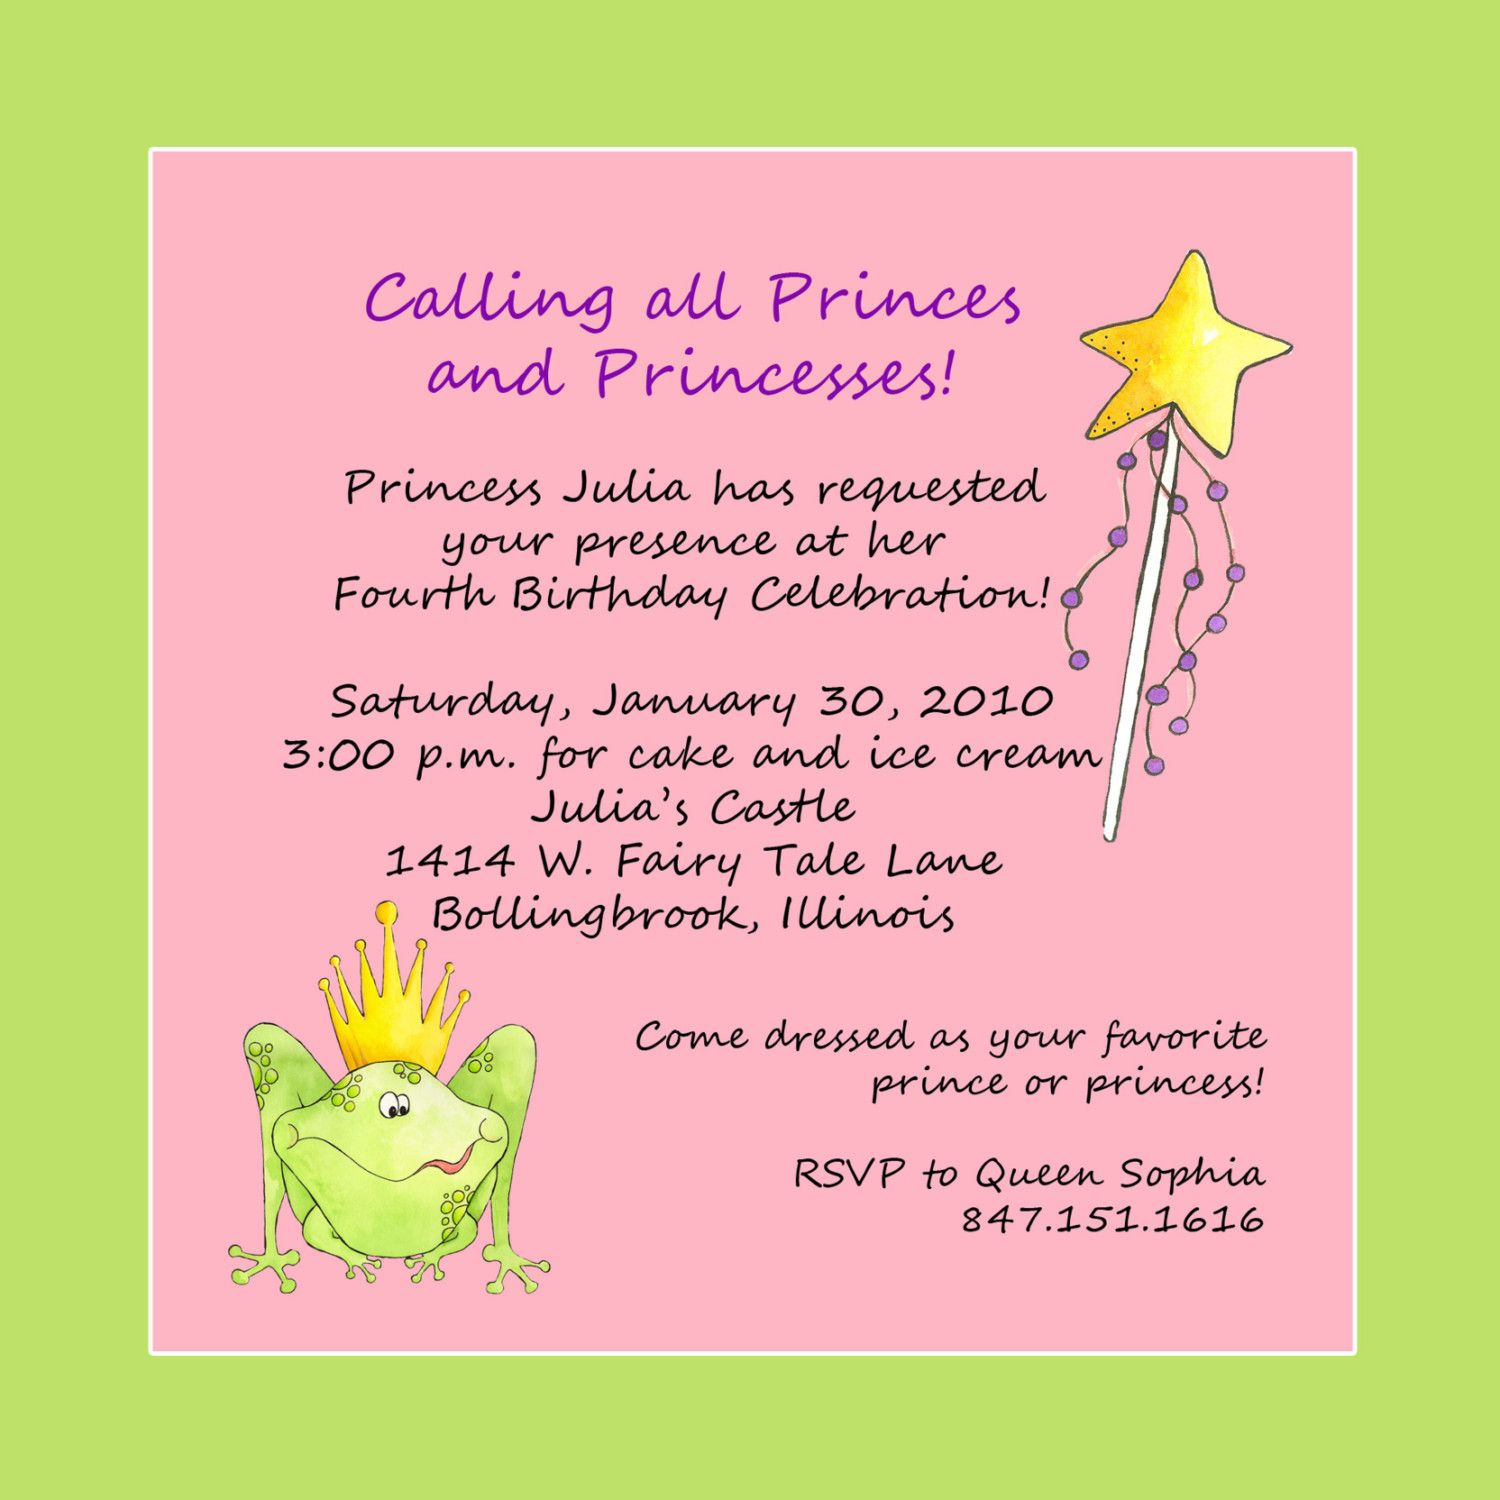 Princess theme birthday party invitation custom wording 2000 first birthday invitation wording and birthday invitations college graduate sample resume examples of a good essay introduction dental hygiene cover letter stopboris Image collections